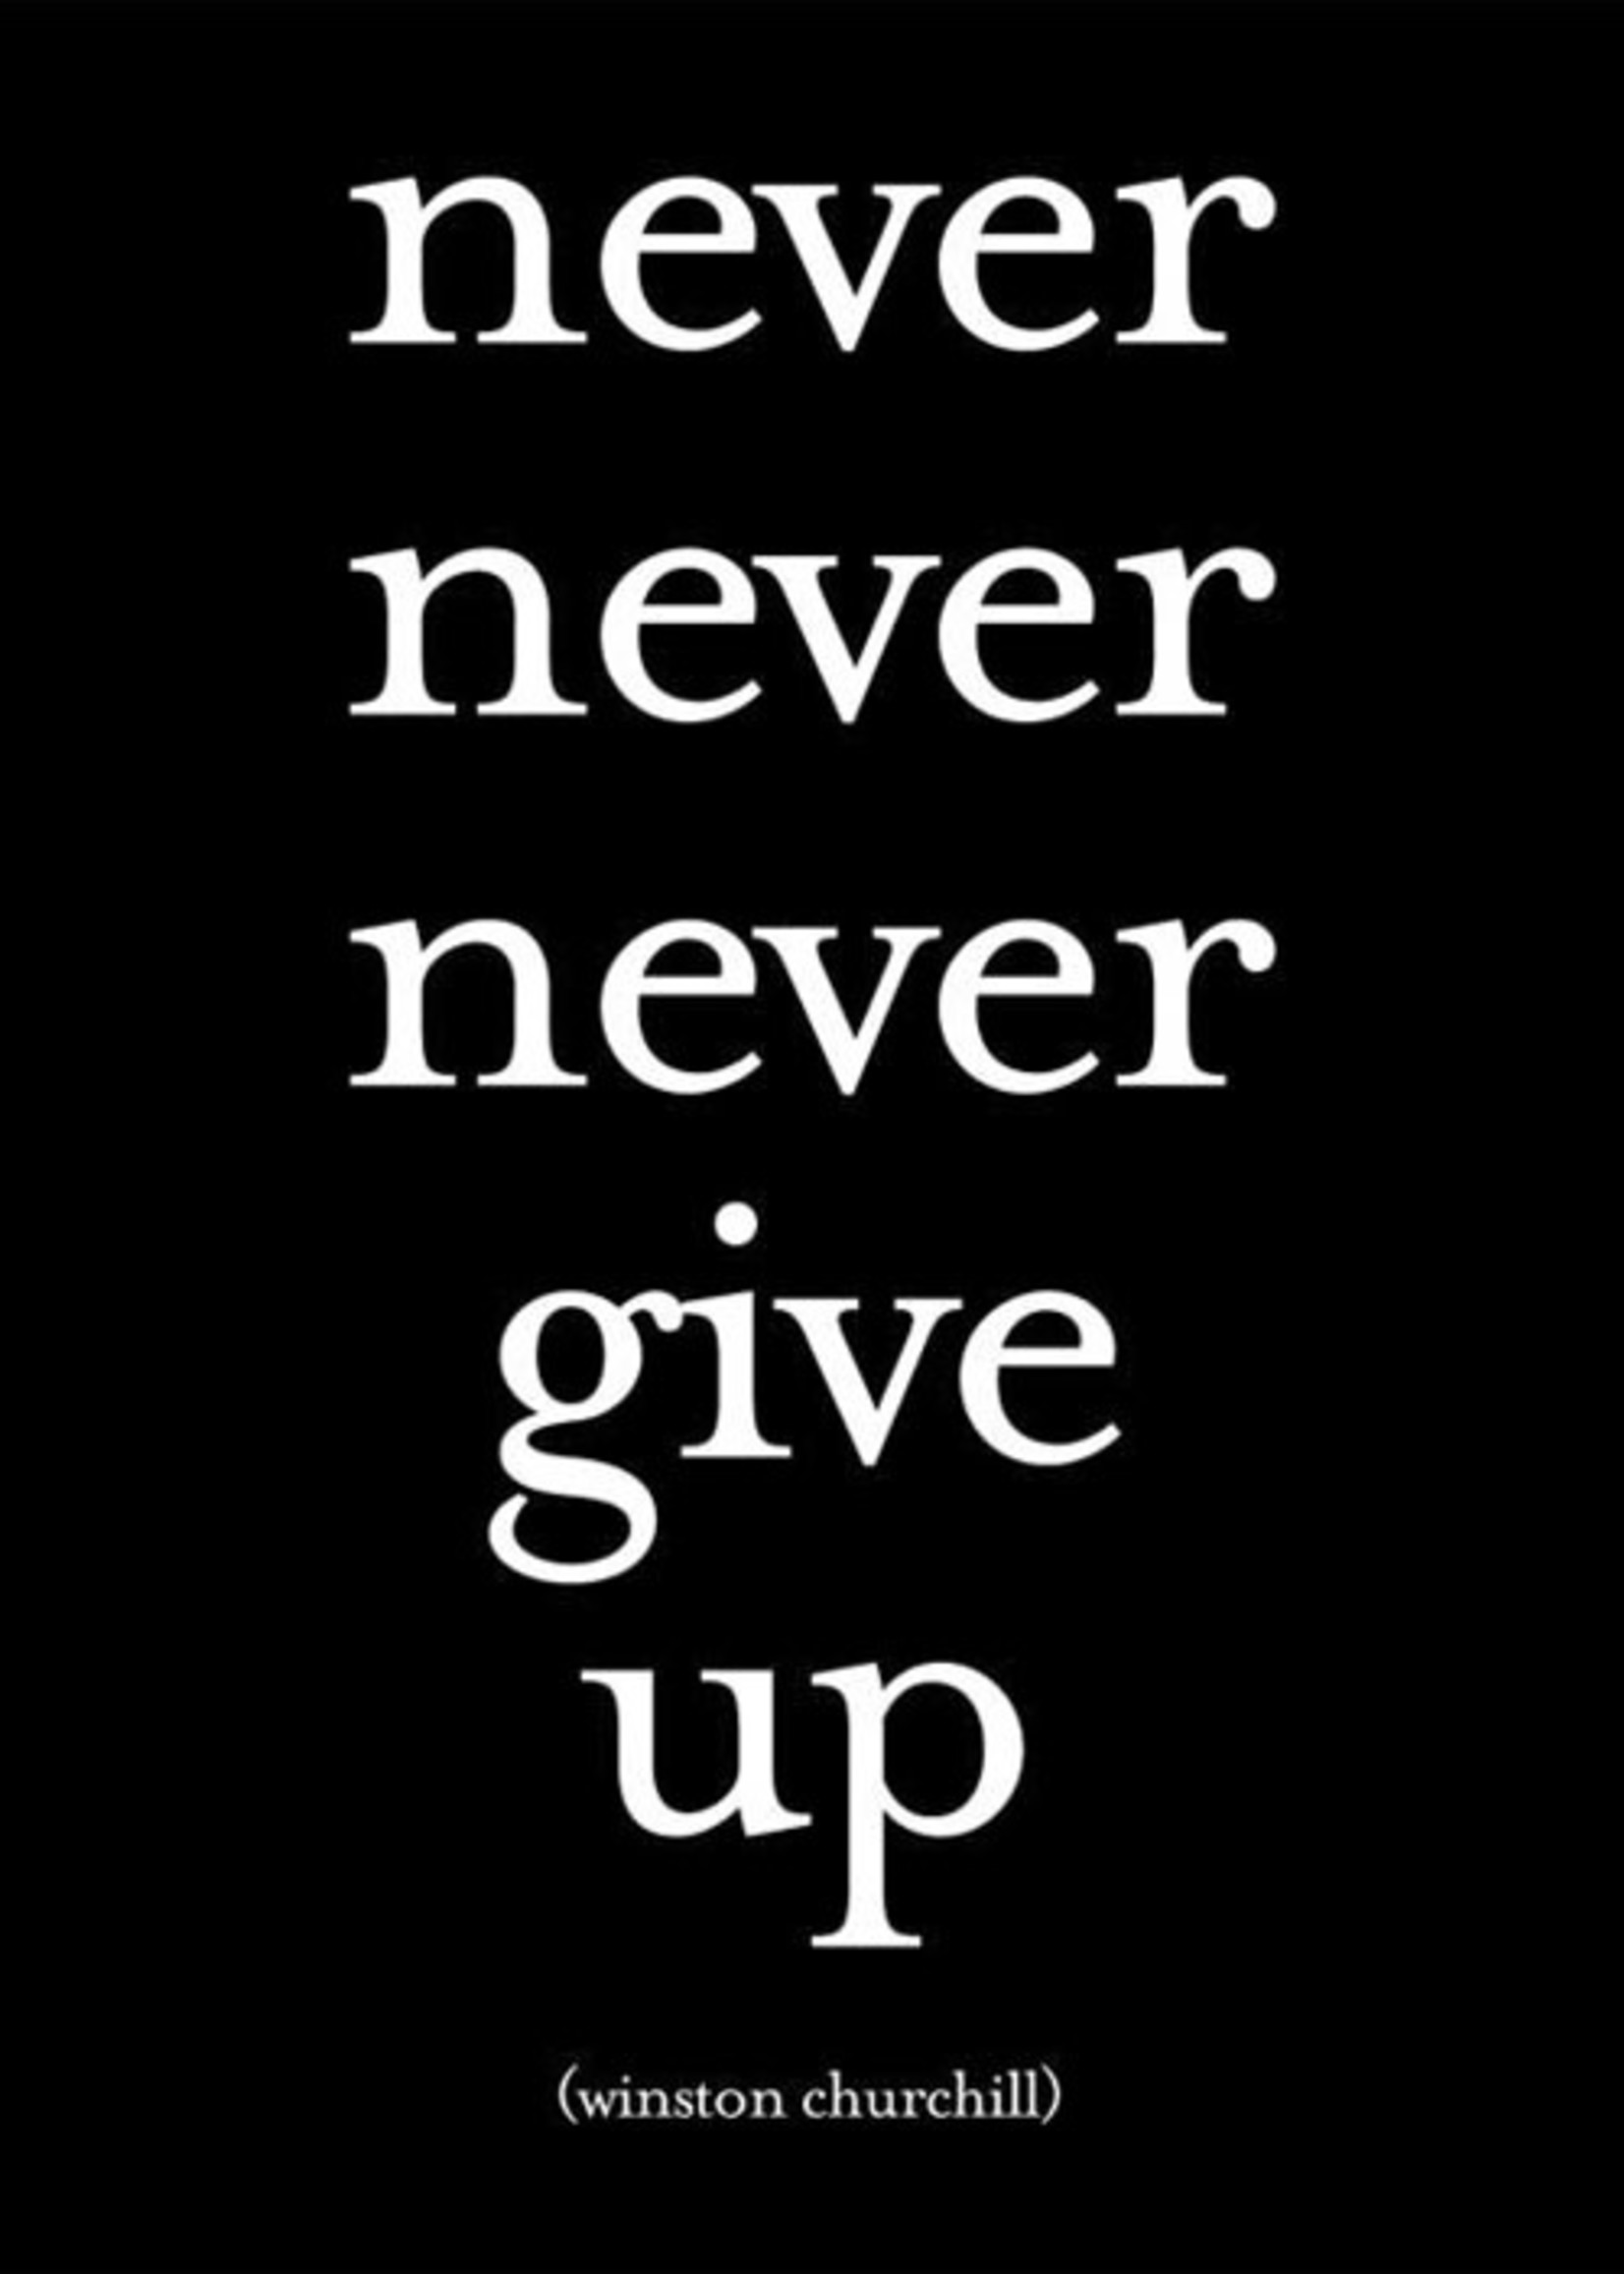 MAGNET Never Never Never Give Up